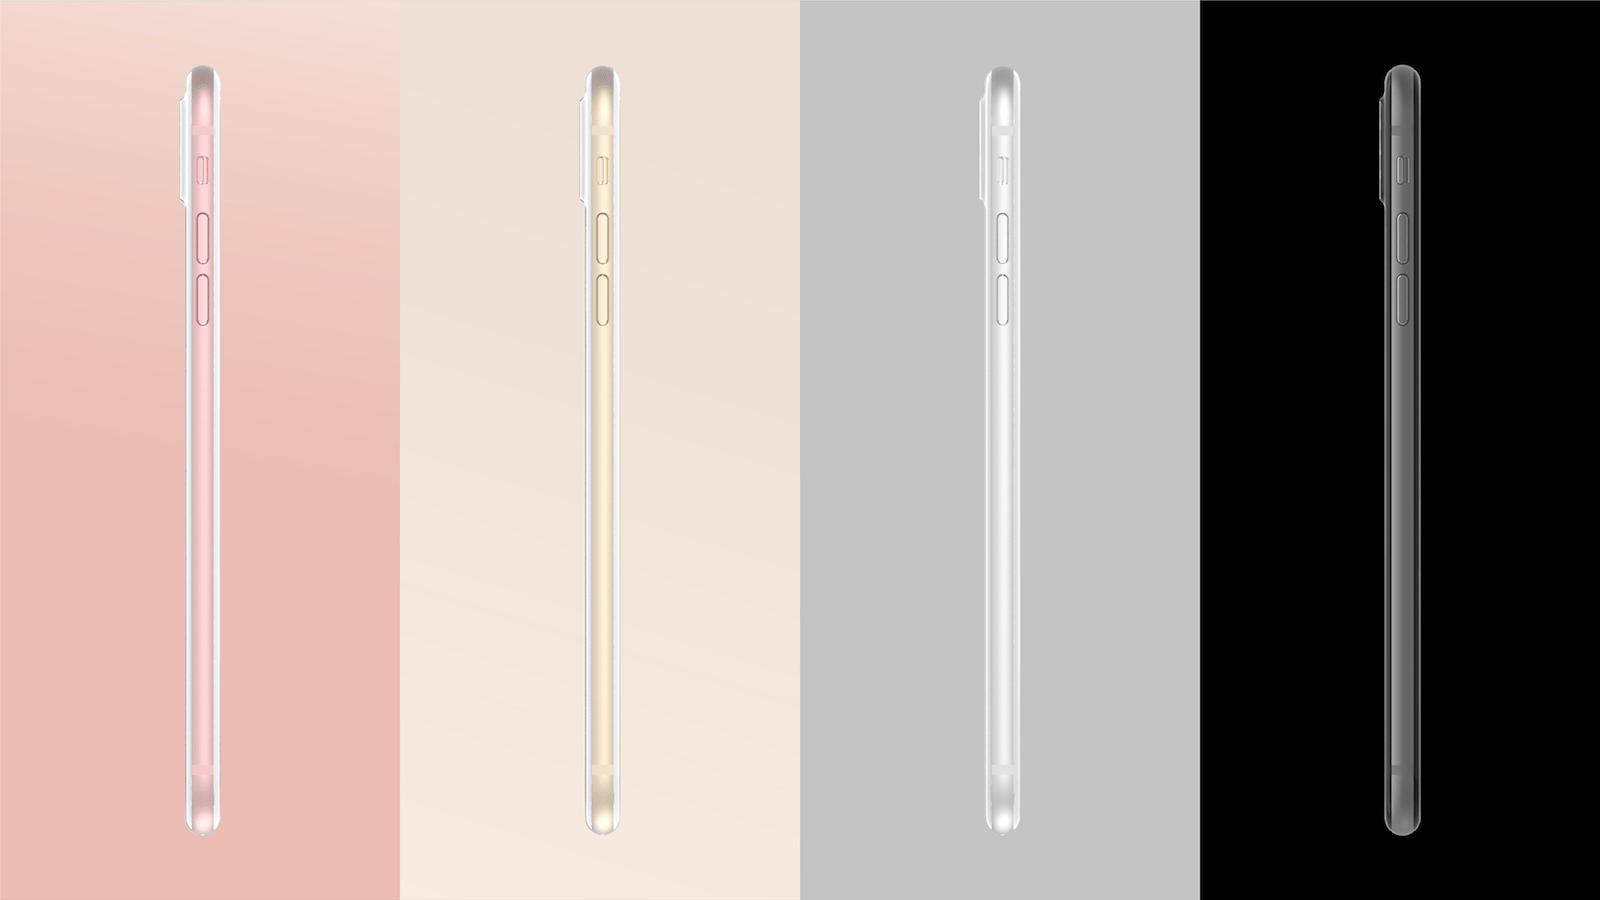 iphone-8-hero-images-concept-6.png